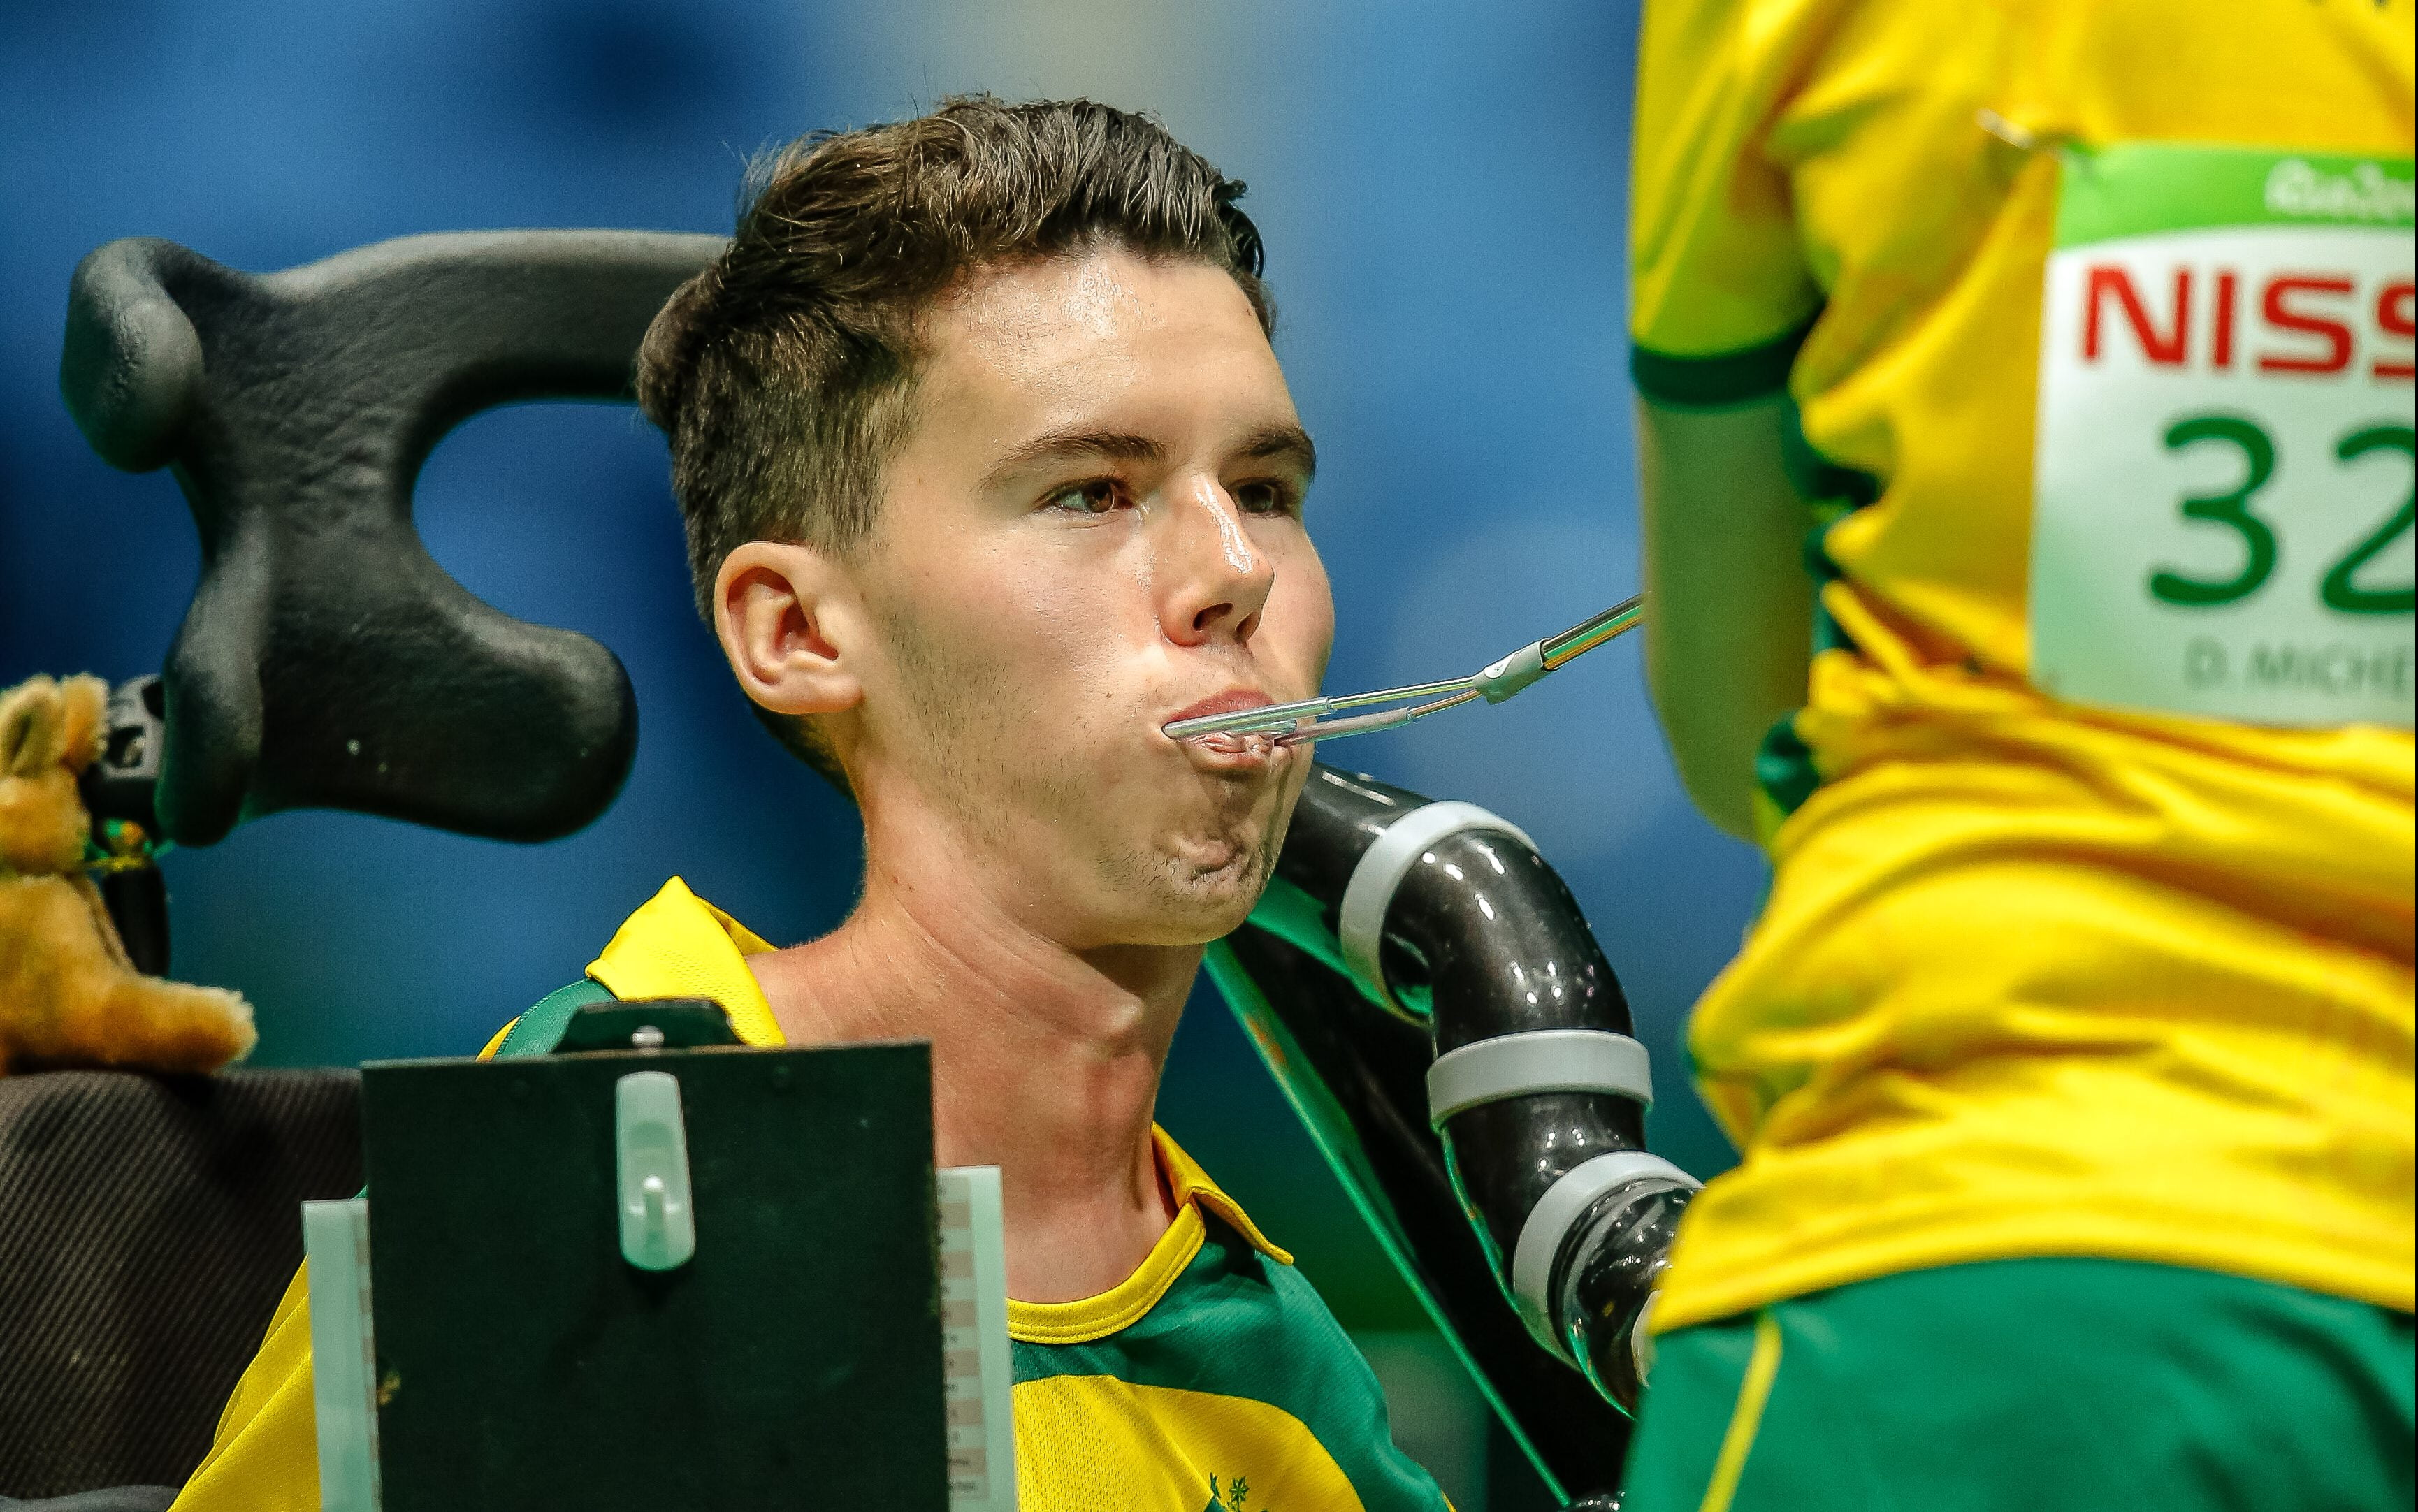 Australian boccia athlete knocked out of competition